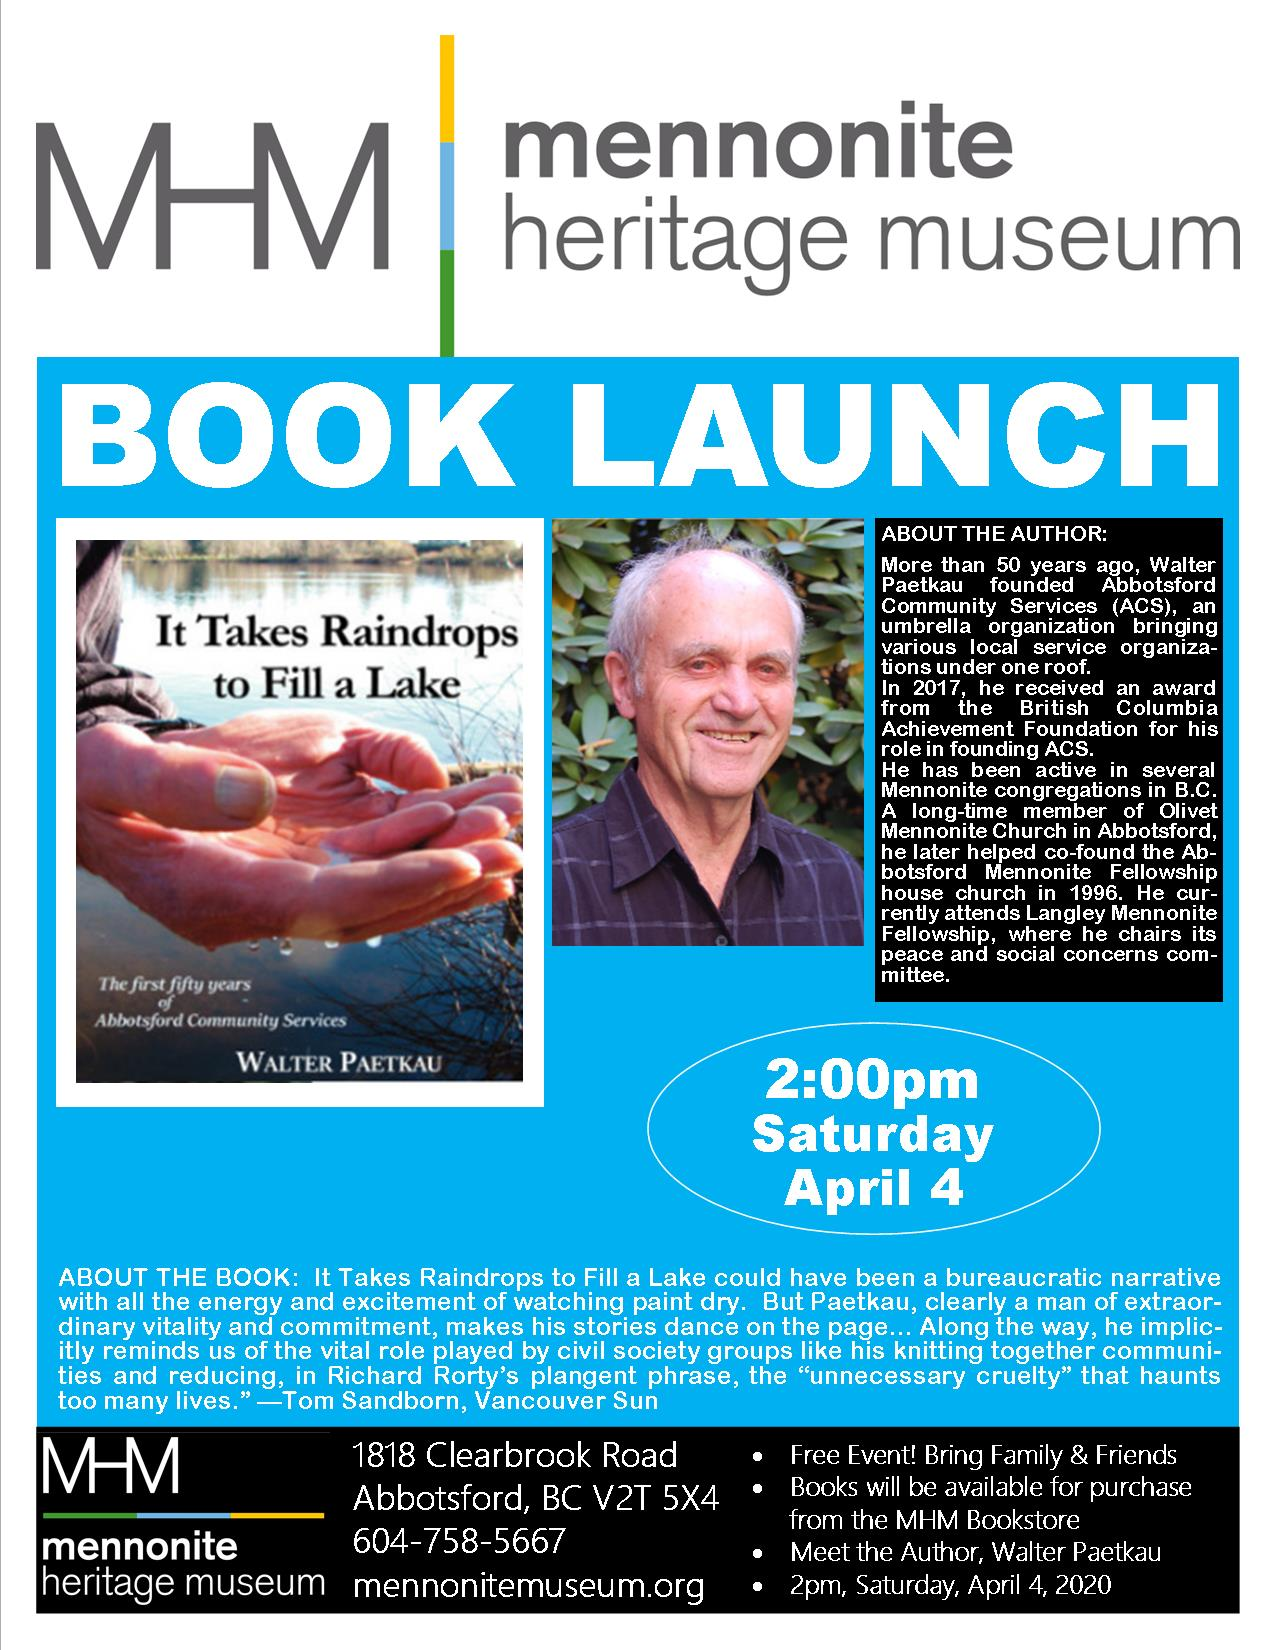 2020 04 04 MHM Book Launch Walter Paetkau Poster